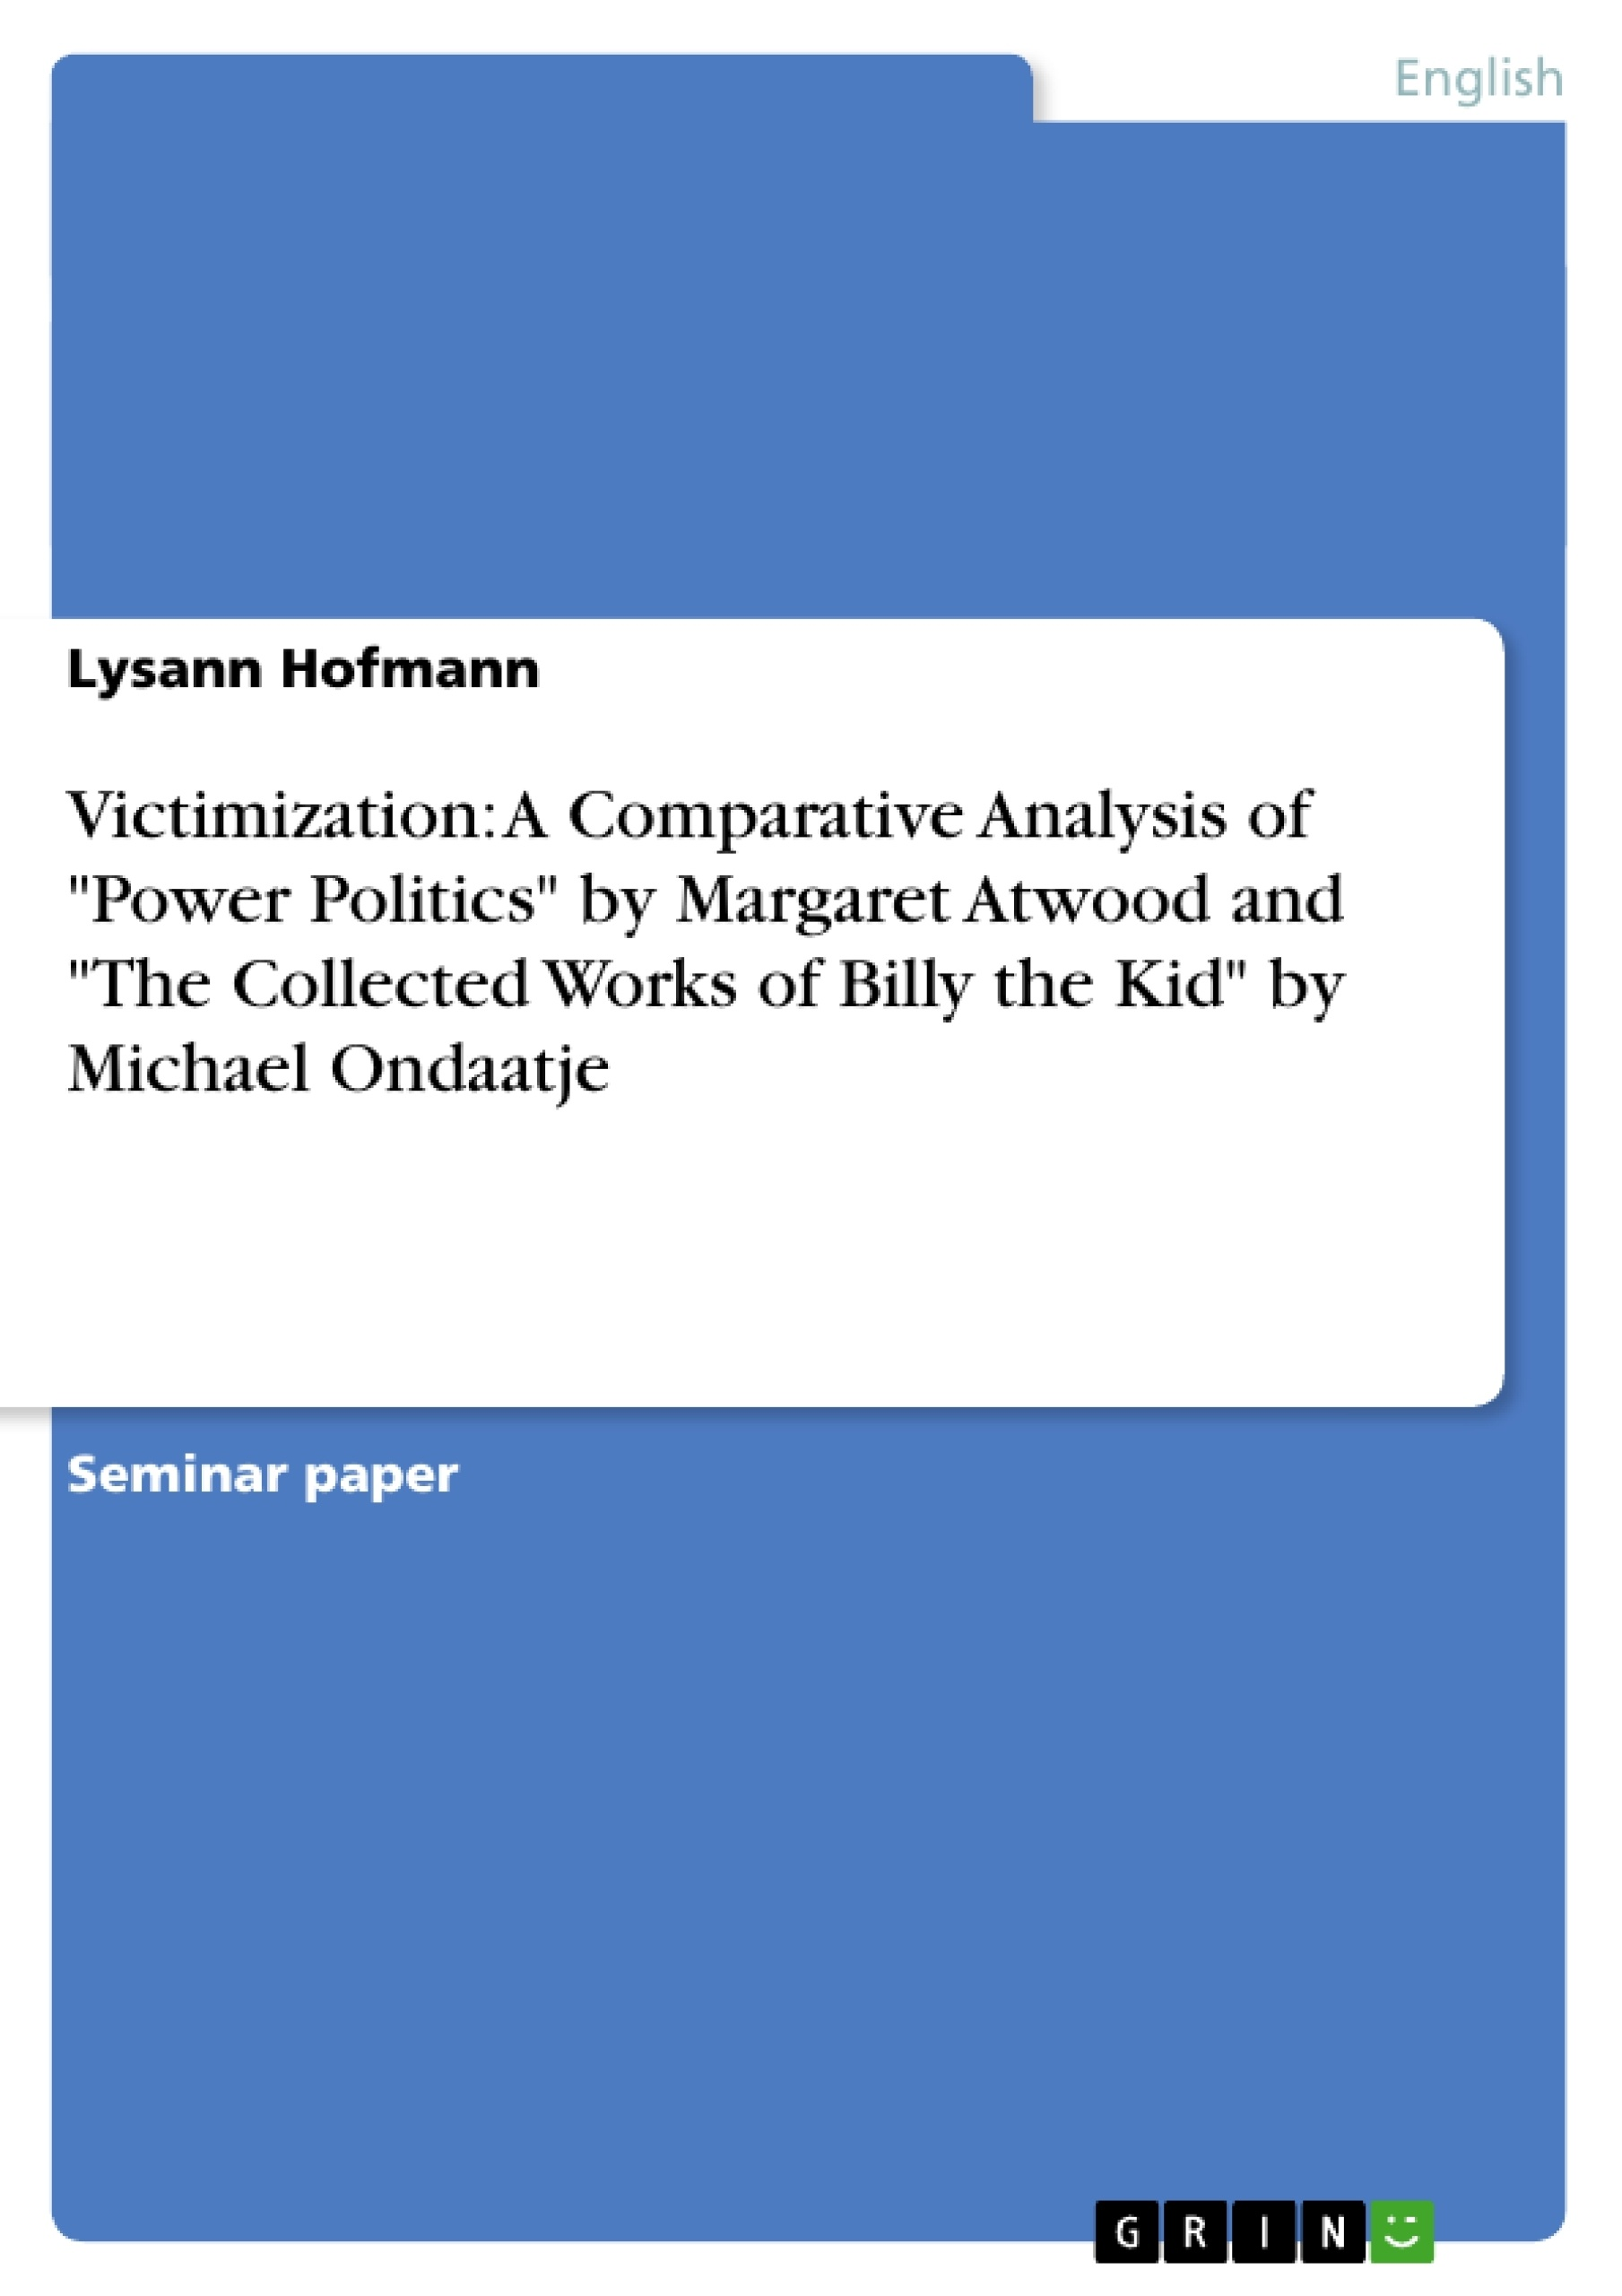 """Title: Victimization: A Comparative Analysis of """"Power Politics"""" by Margaret Atwood and """"The Collected Works of Billy the Kid"""" by Michael Ondaatje"""